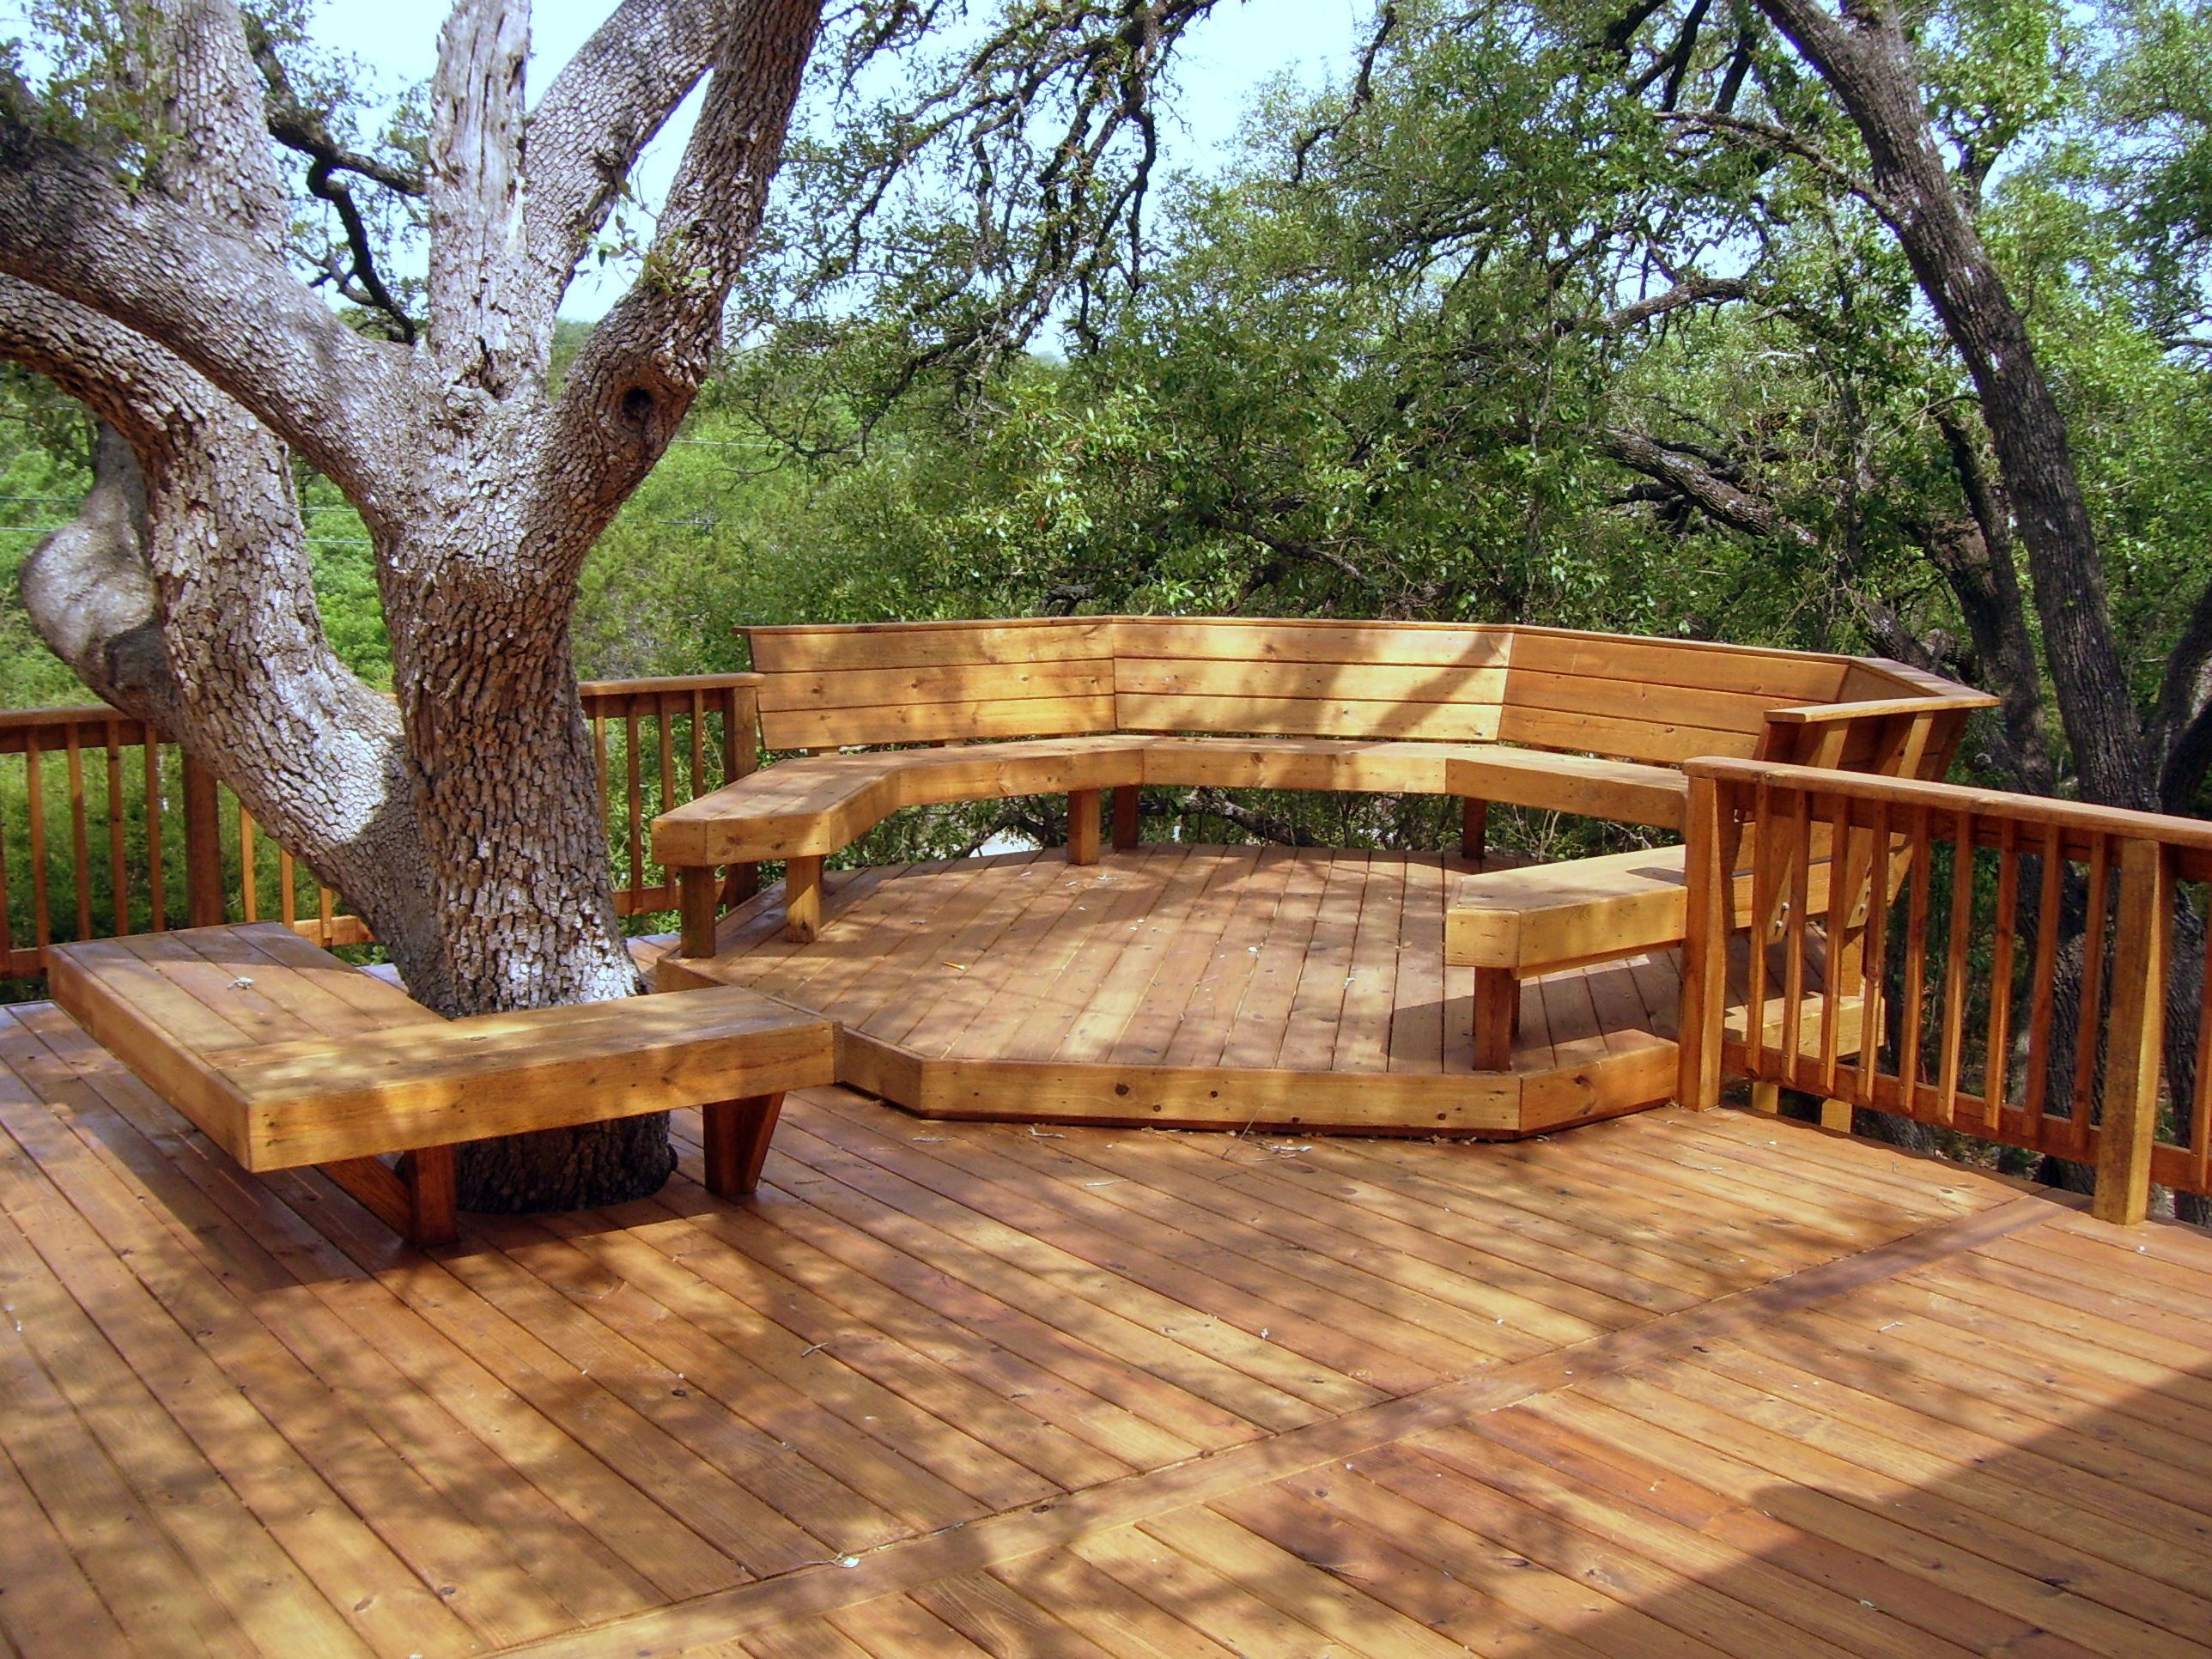 Terrace And Garden Designs: Amazing Wooden Backyard Decking Ideas In The  Forest Area, Beautiful Deck Design Ideas, Decks Design